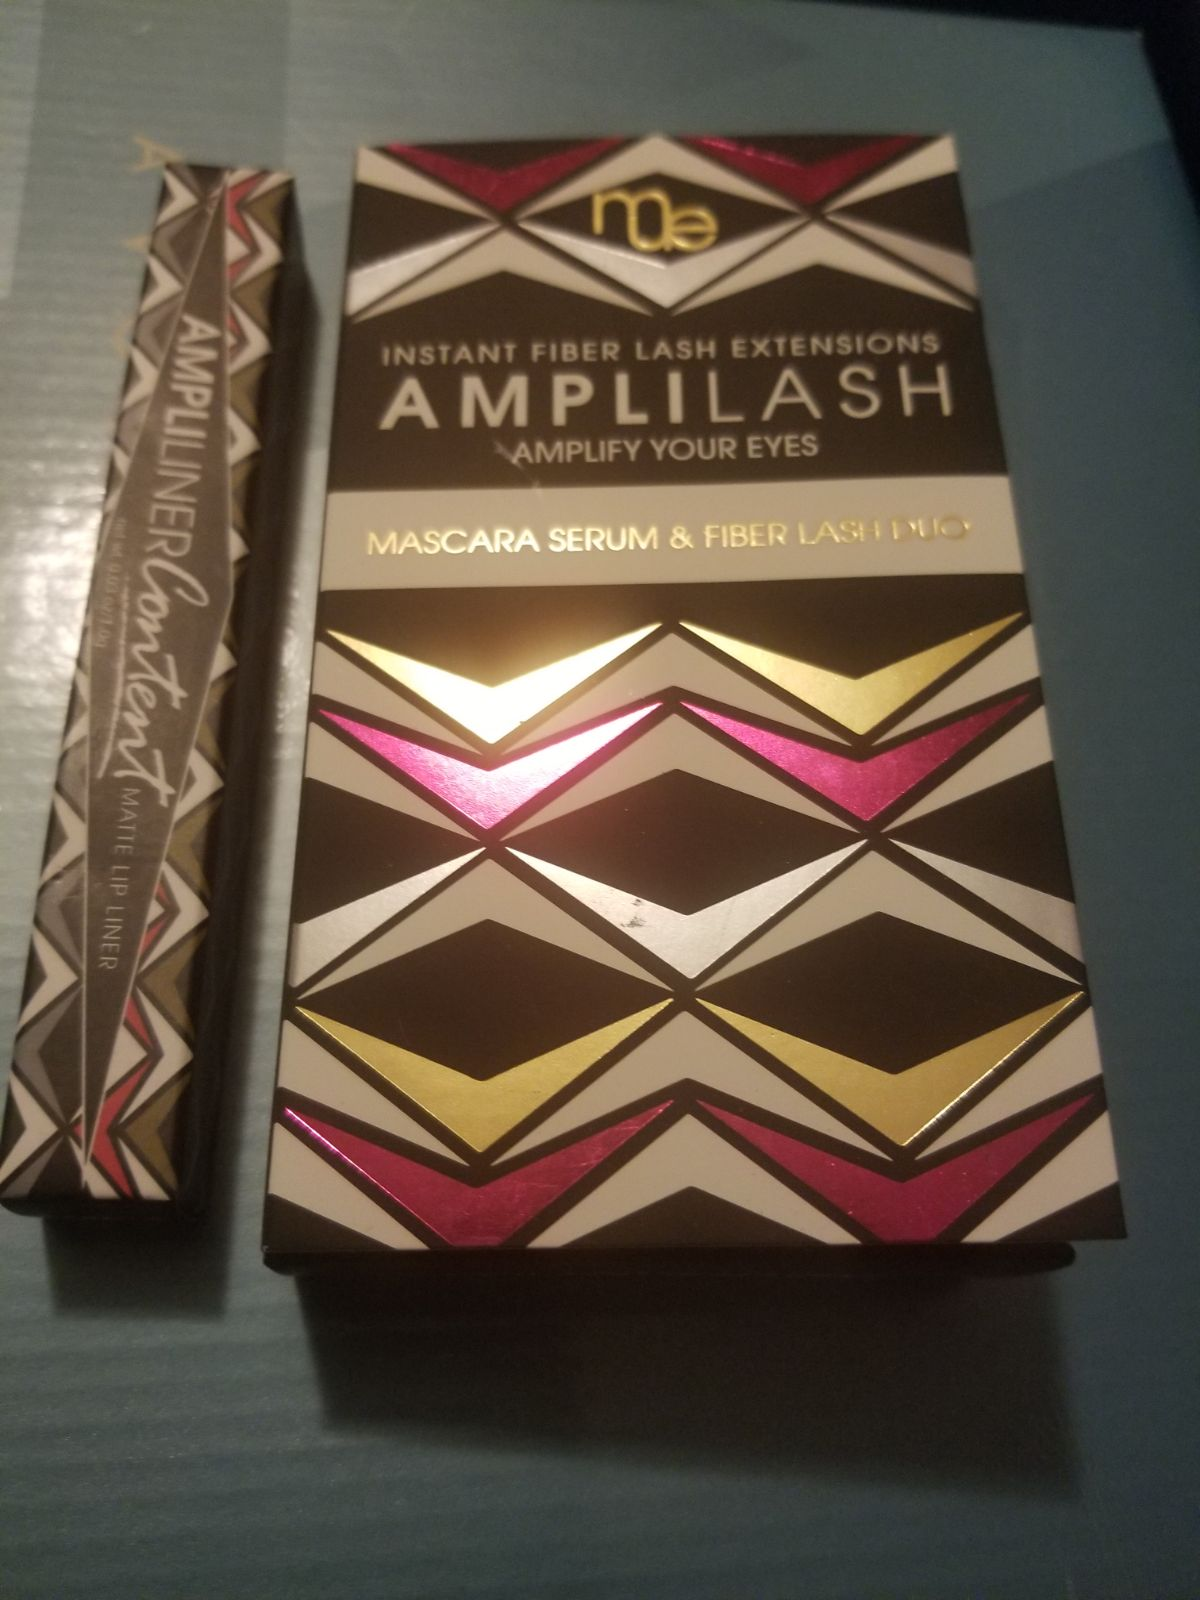 Amplilash mascara 3d and lip liner